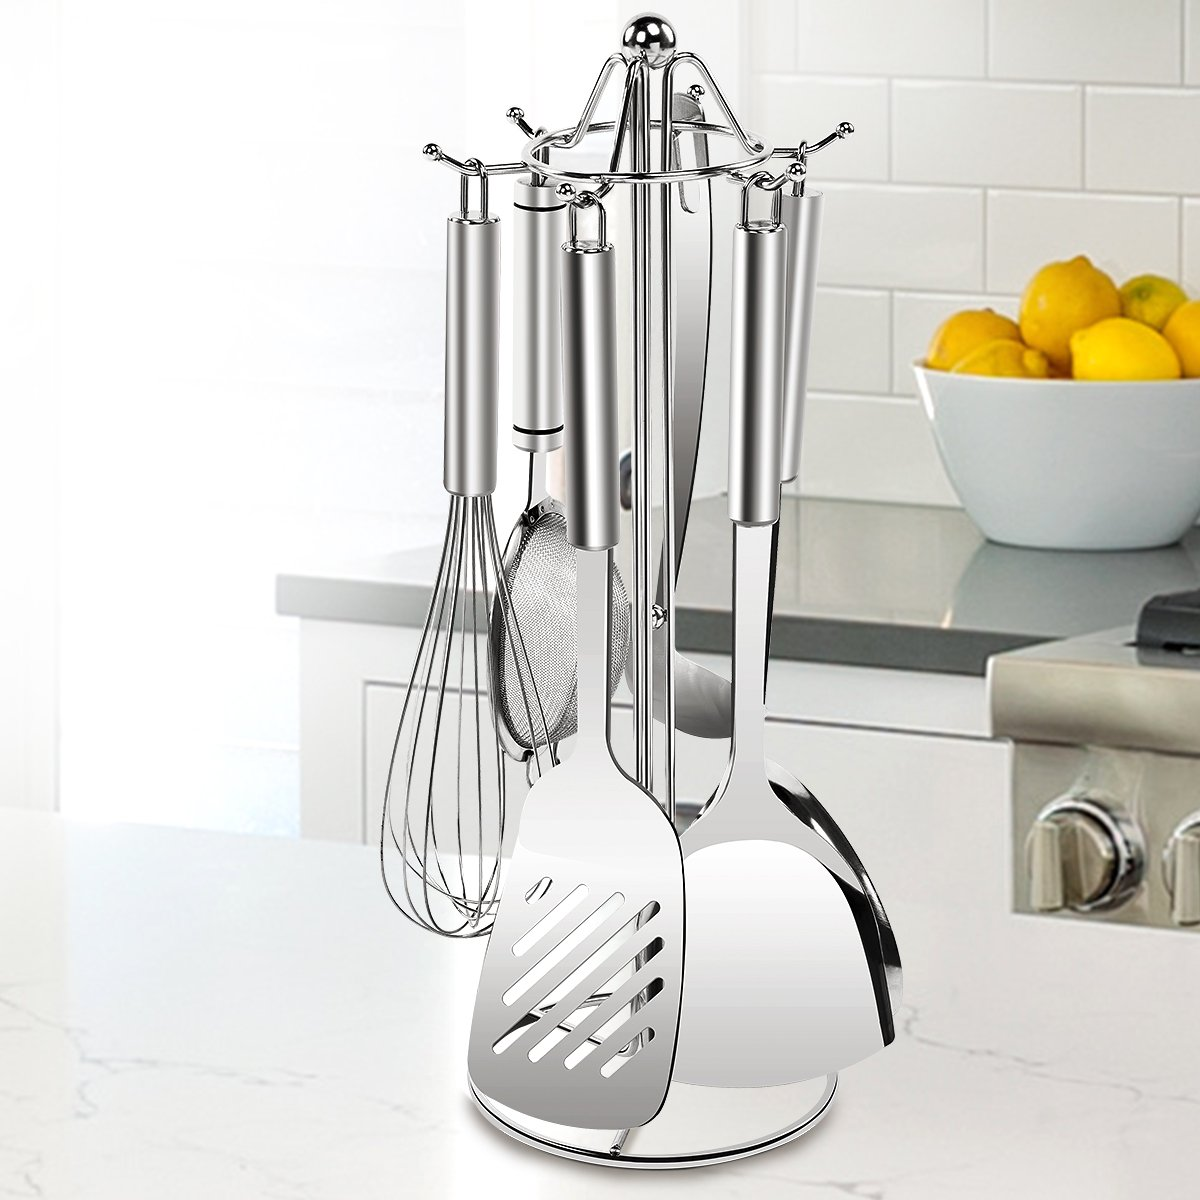 SINGAYE Utensil Stand Kitchen Tools Rack 304 Stainless Steel Holders 16.1 inch, 6 Hooks for Spoon,Soup Ladle,Pasta Server, Spatula etc. by SINGAYE